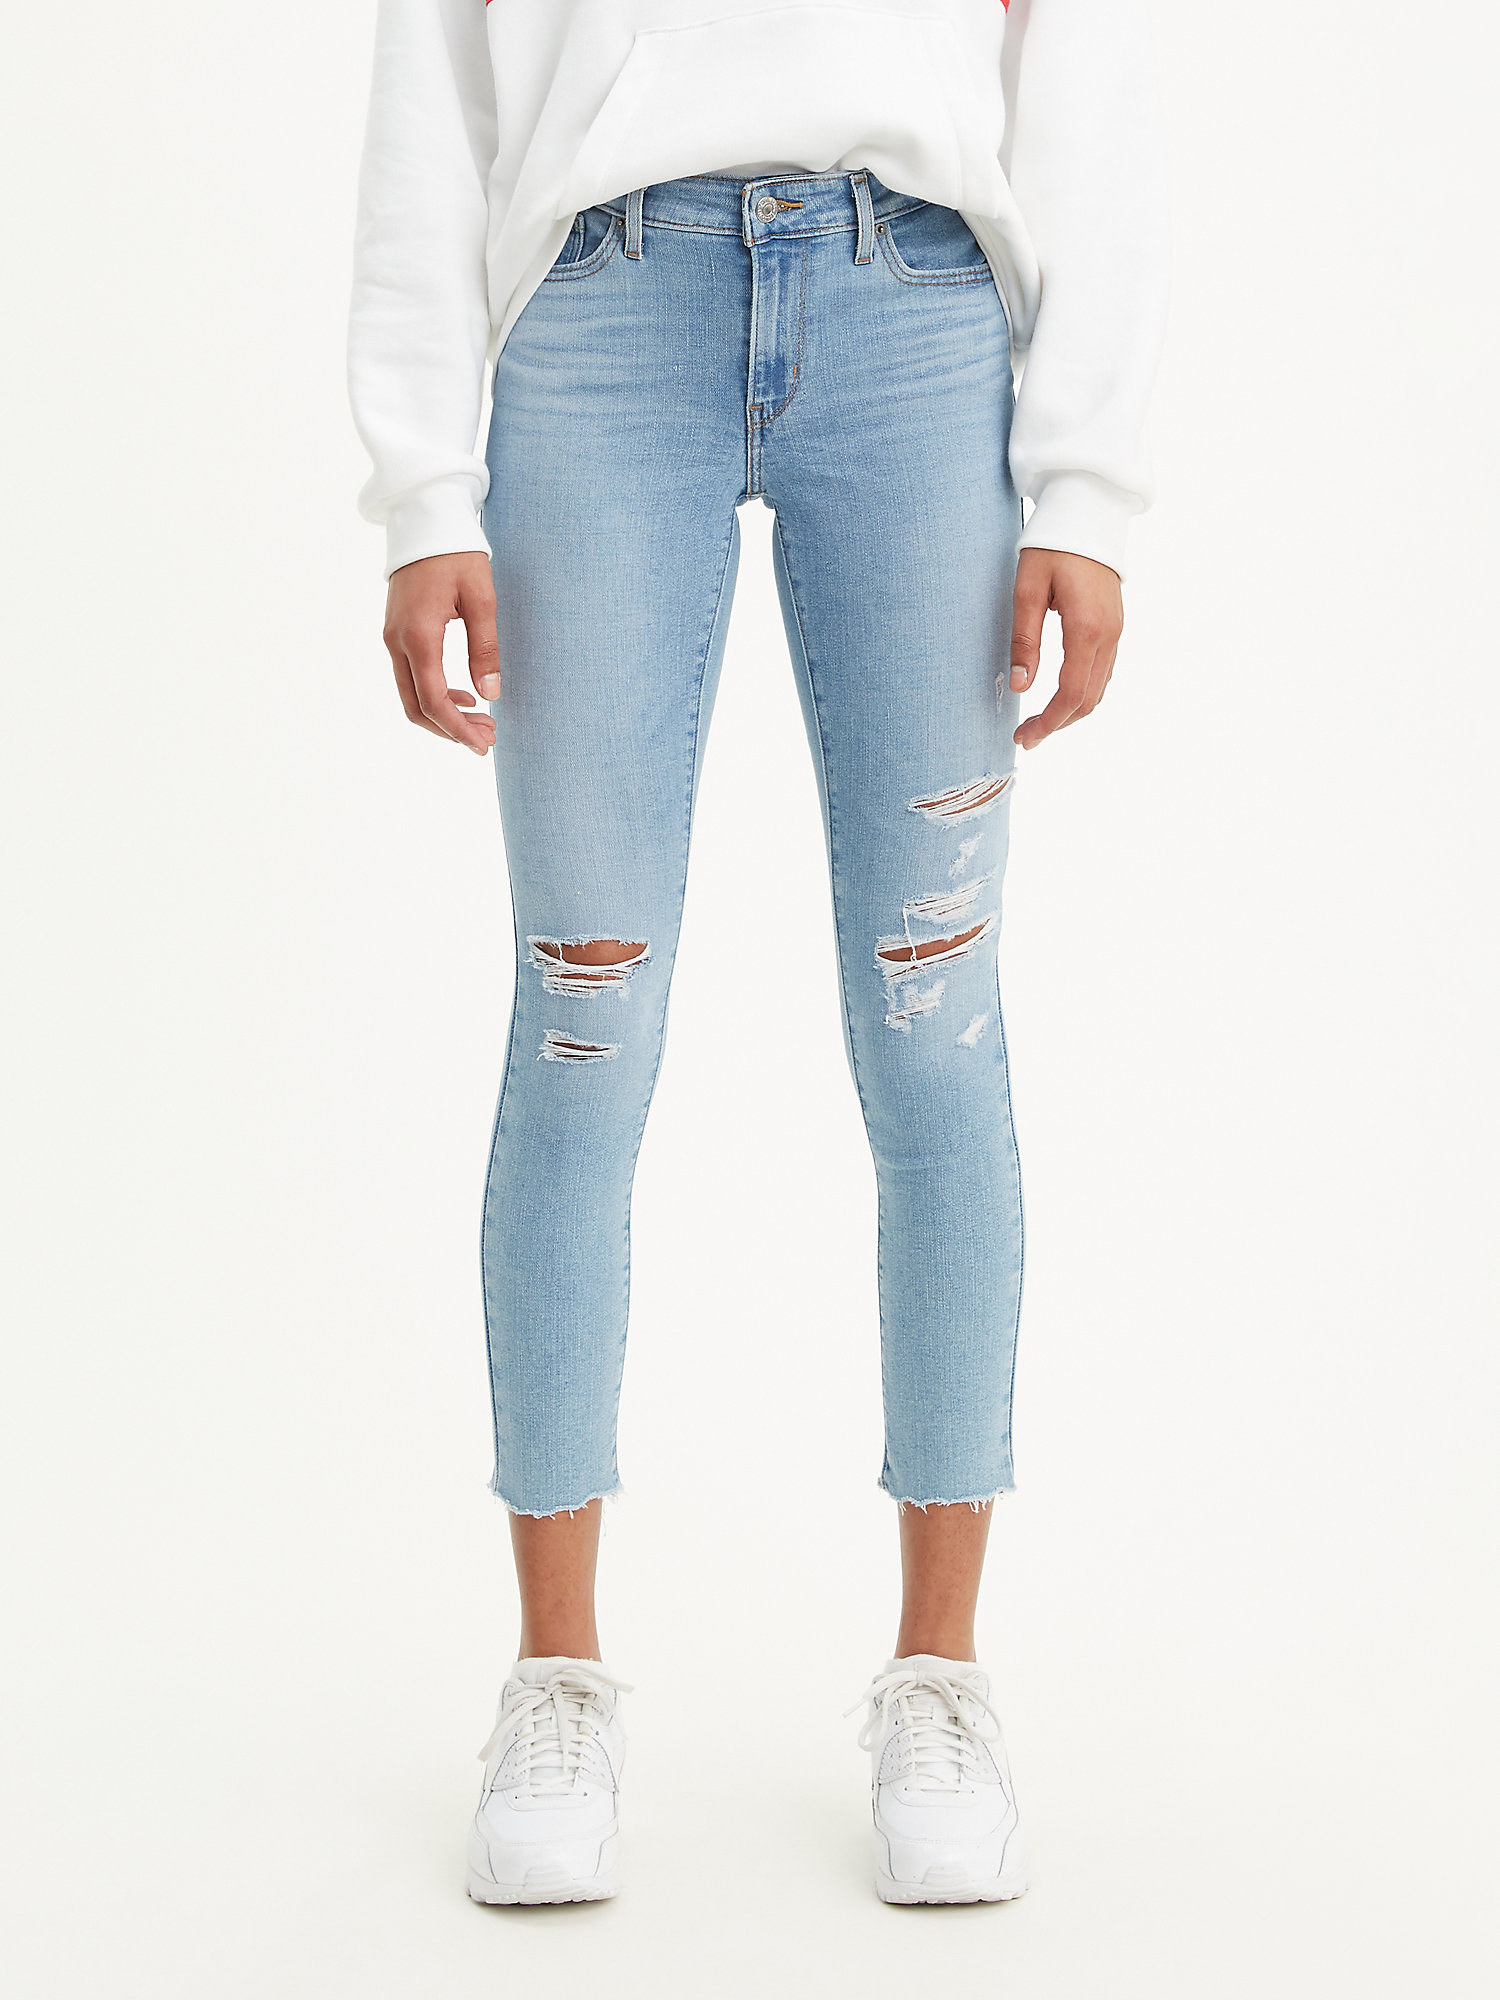 the jeans with distress marks throughout